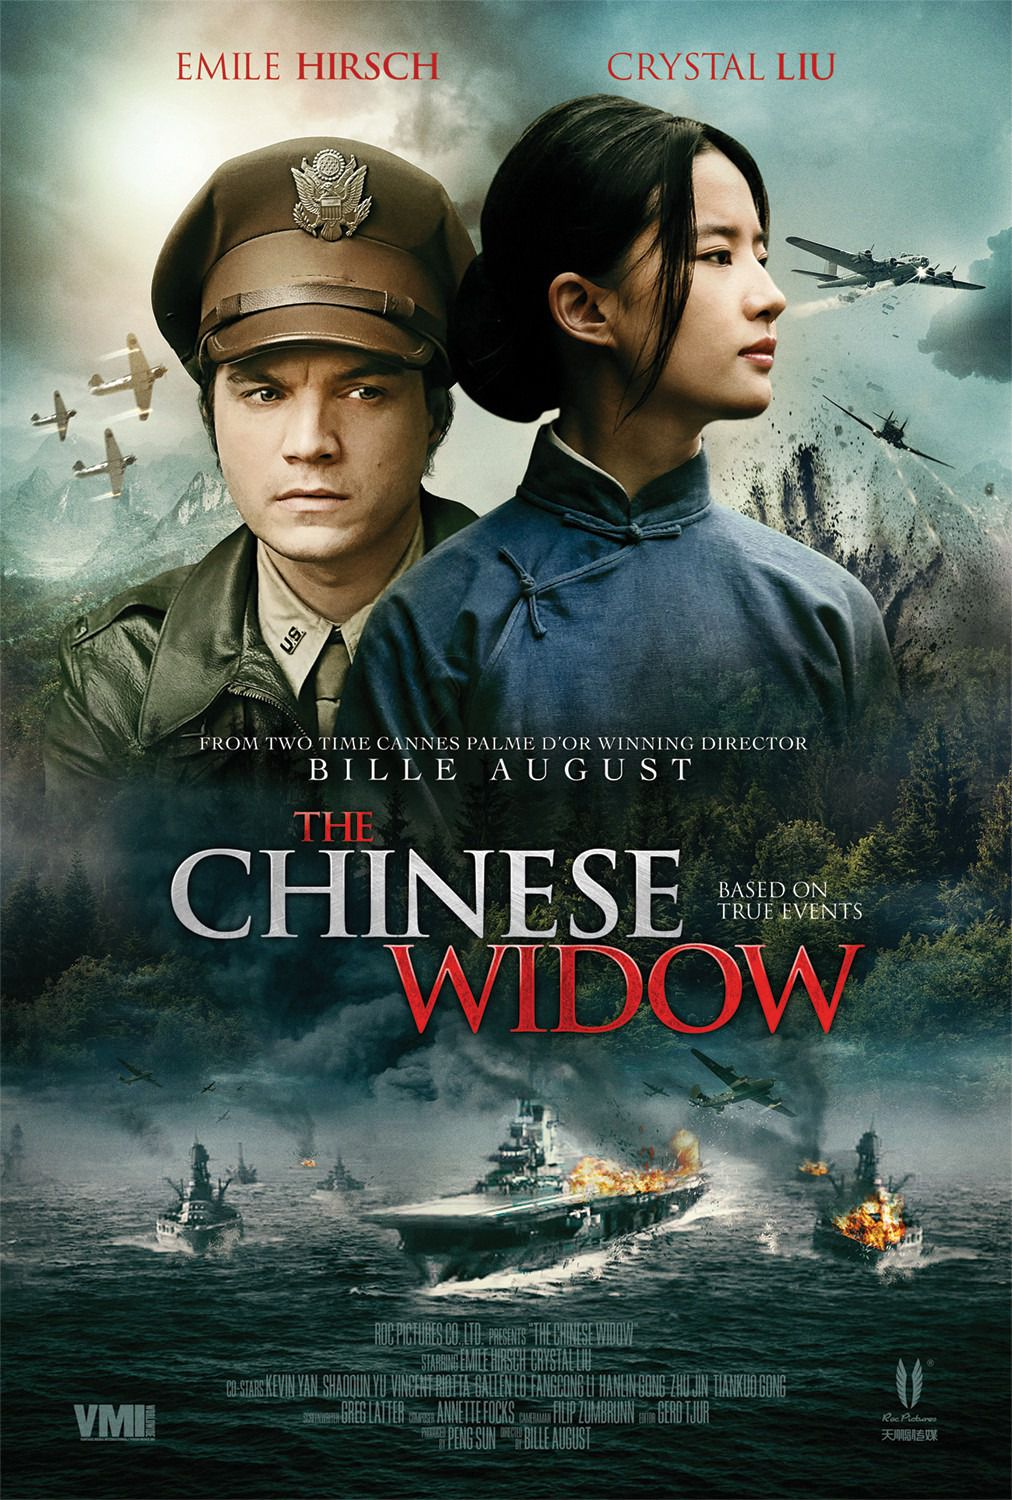 The Chinese Widow - Feng Huo Fang Fei - Emile Hirsch, Crystal Lie - war film poster